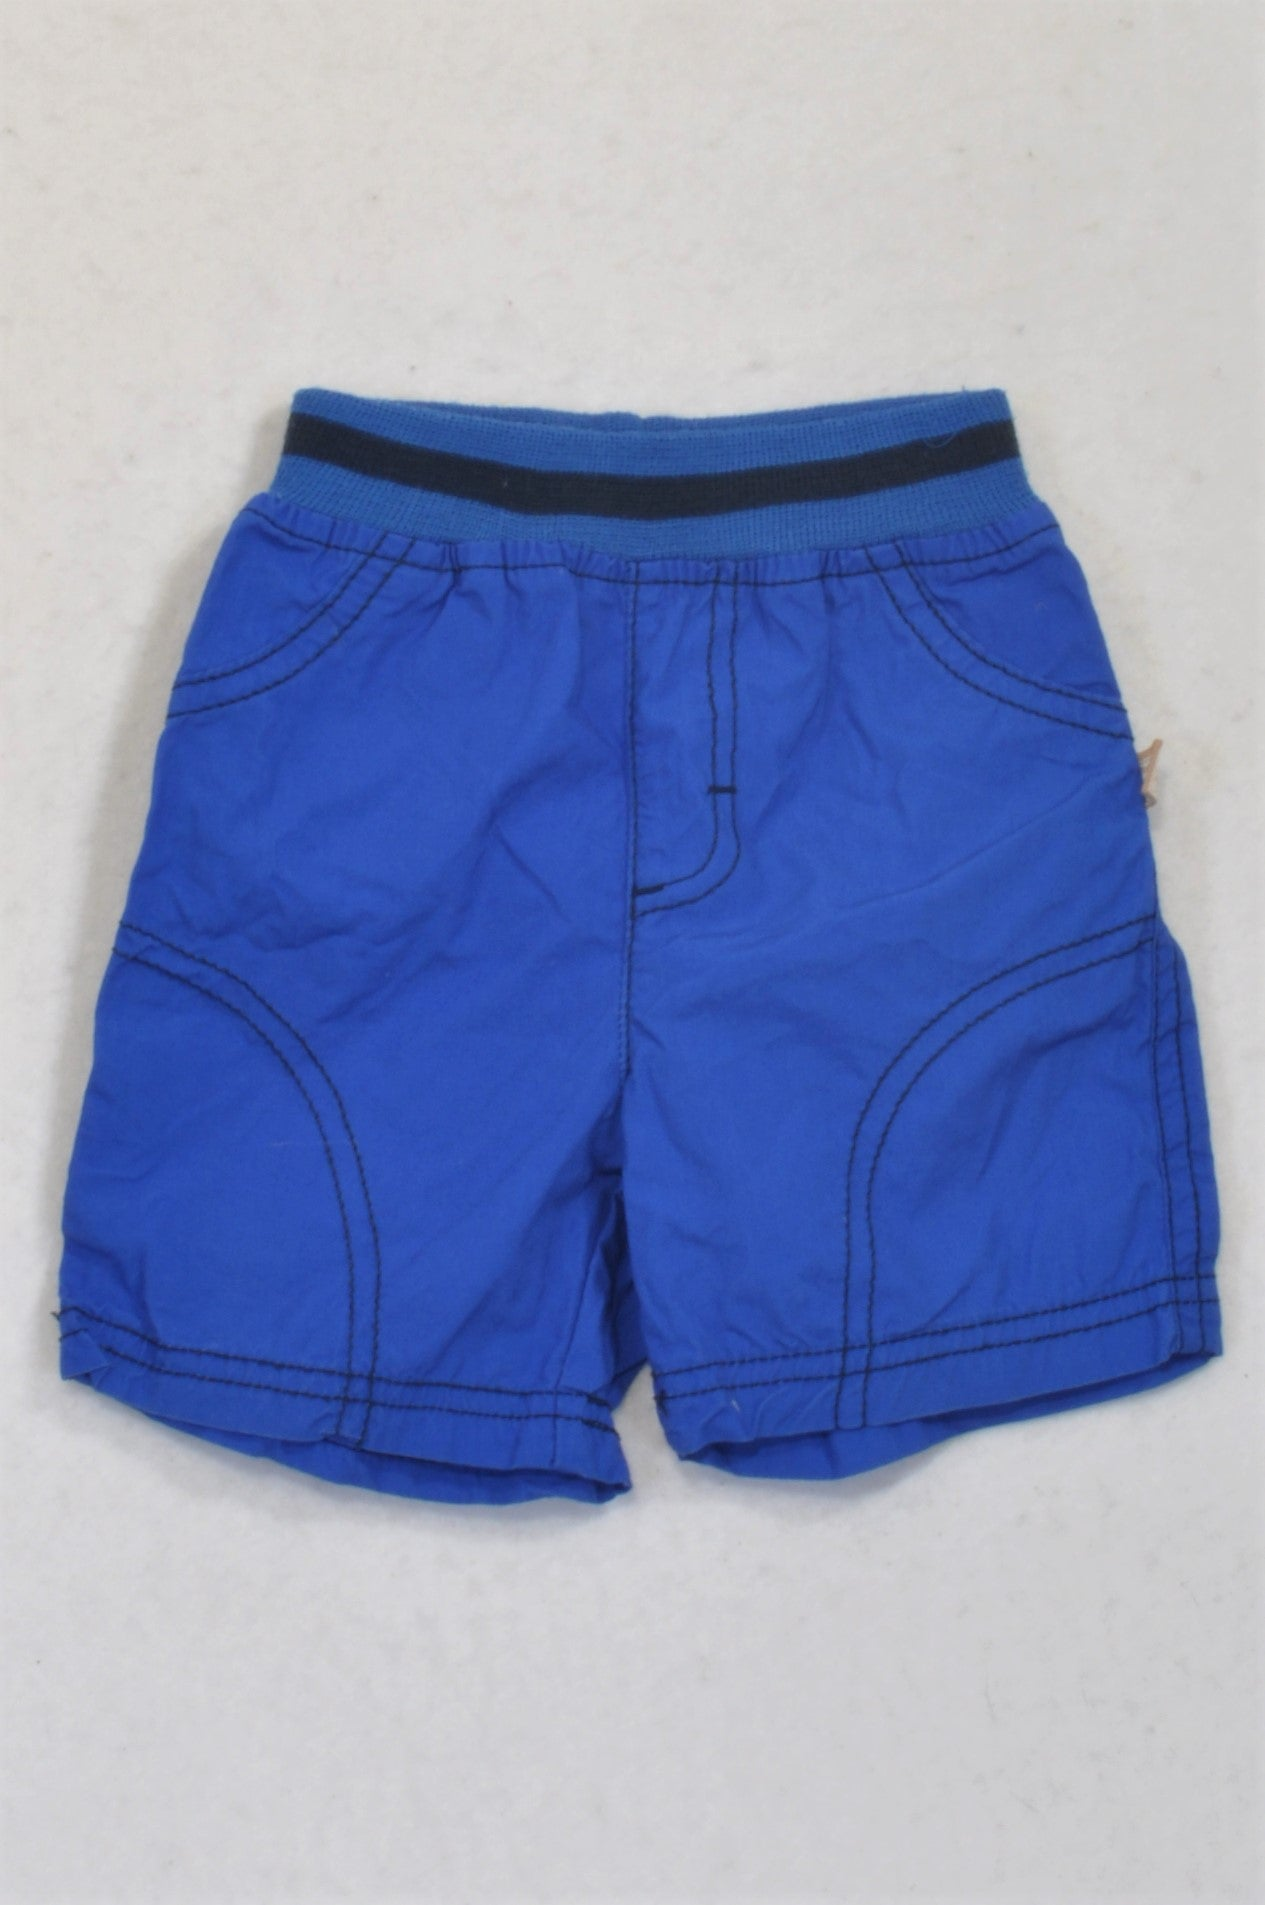 Ackermans Bright Blue Banded Shorts Boys 3-6 months